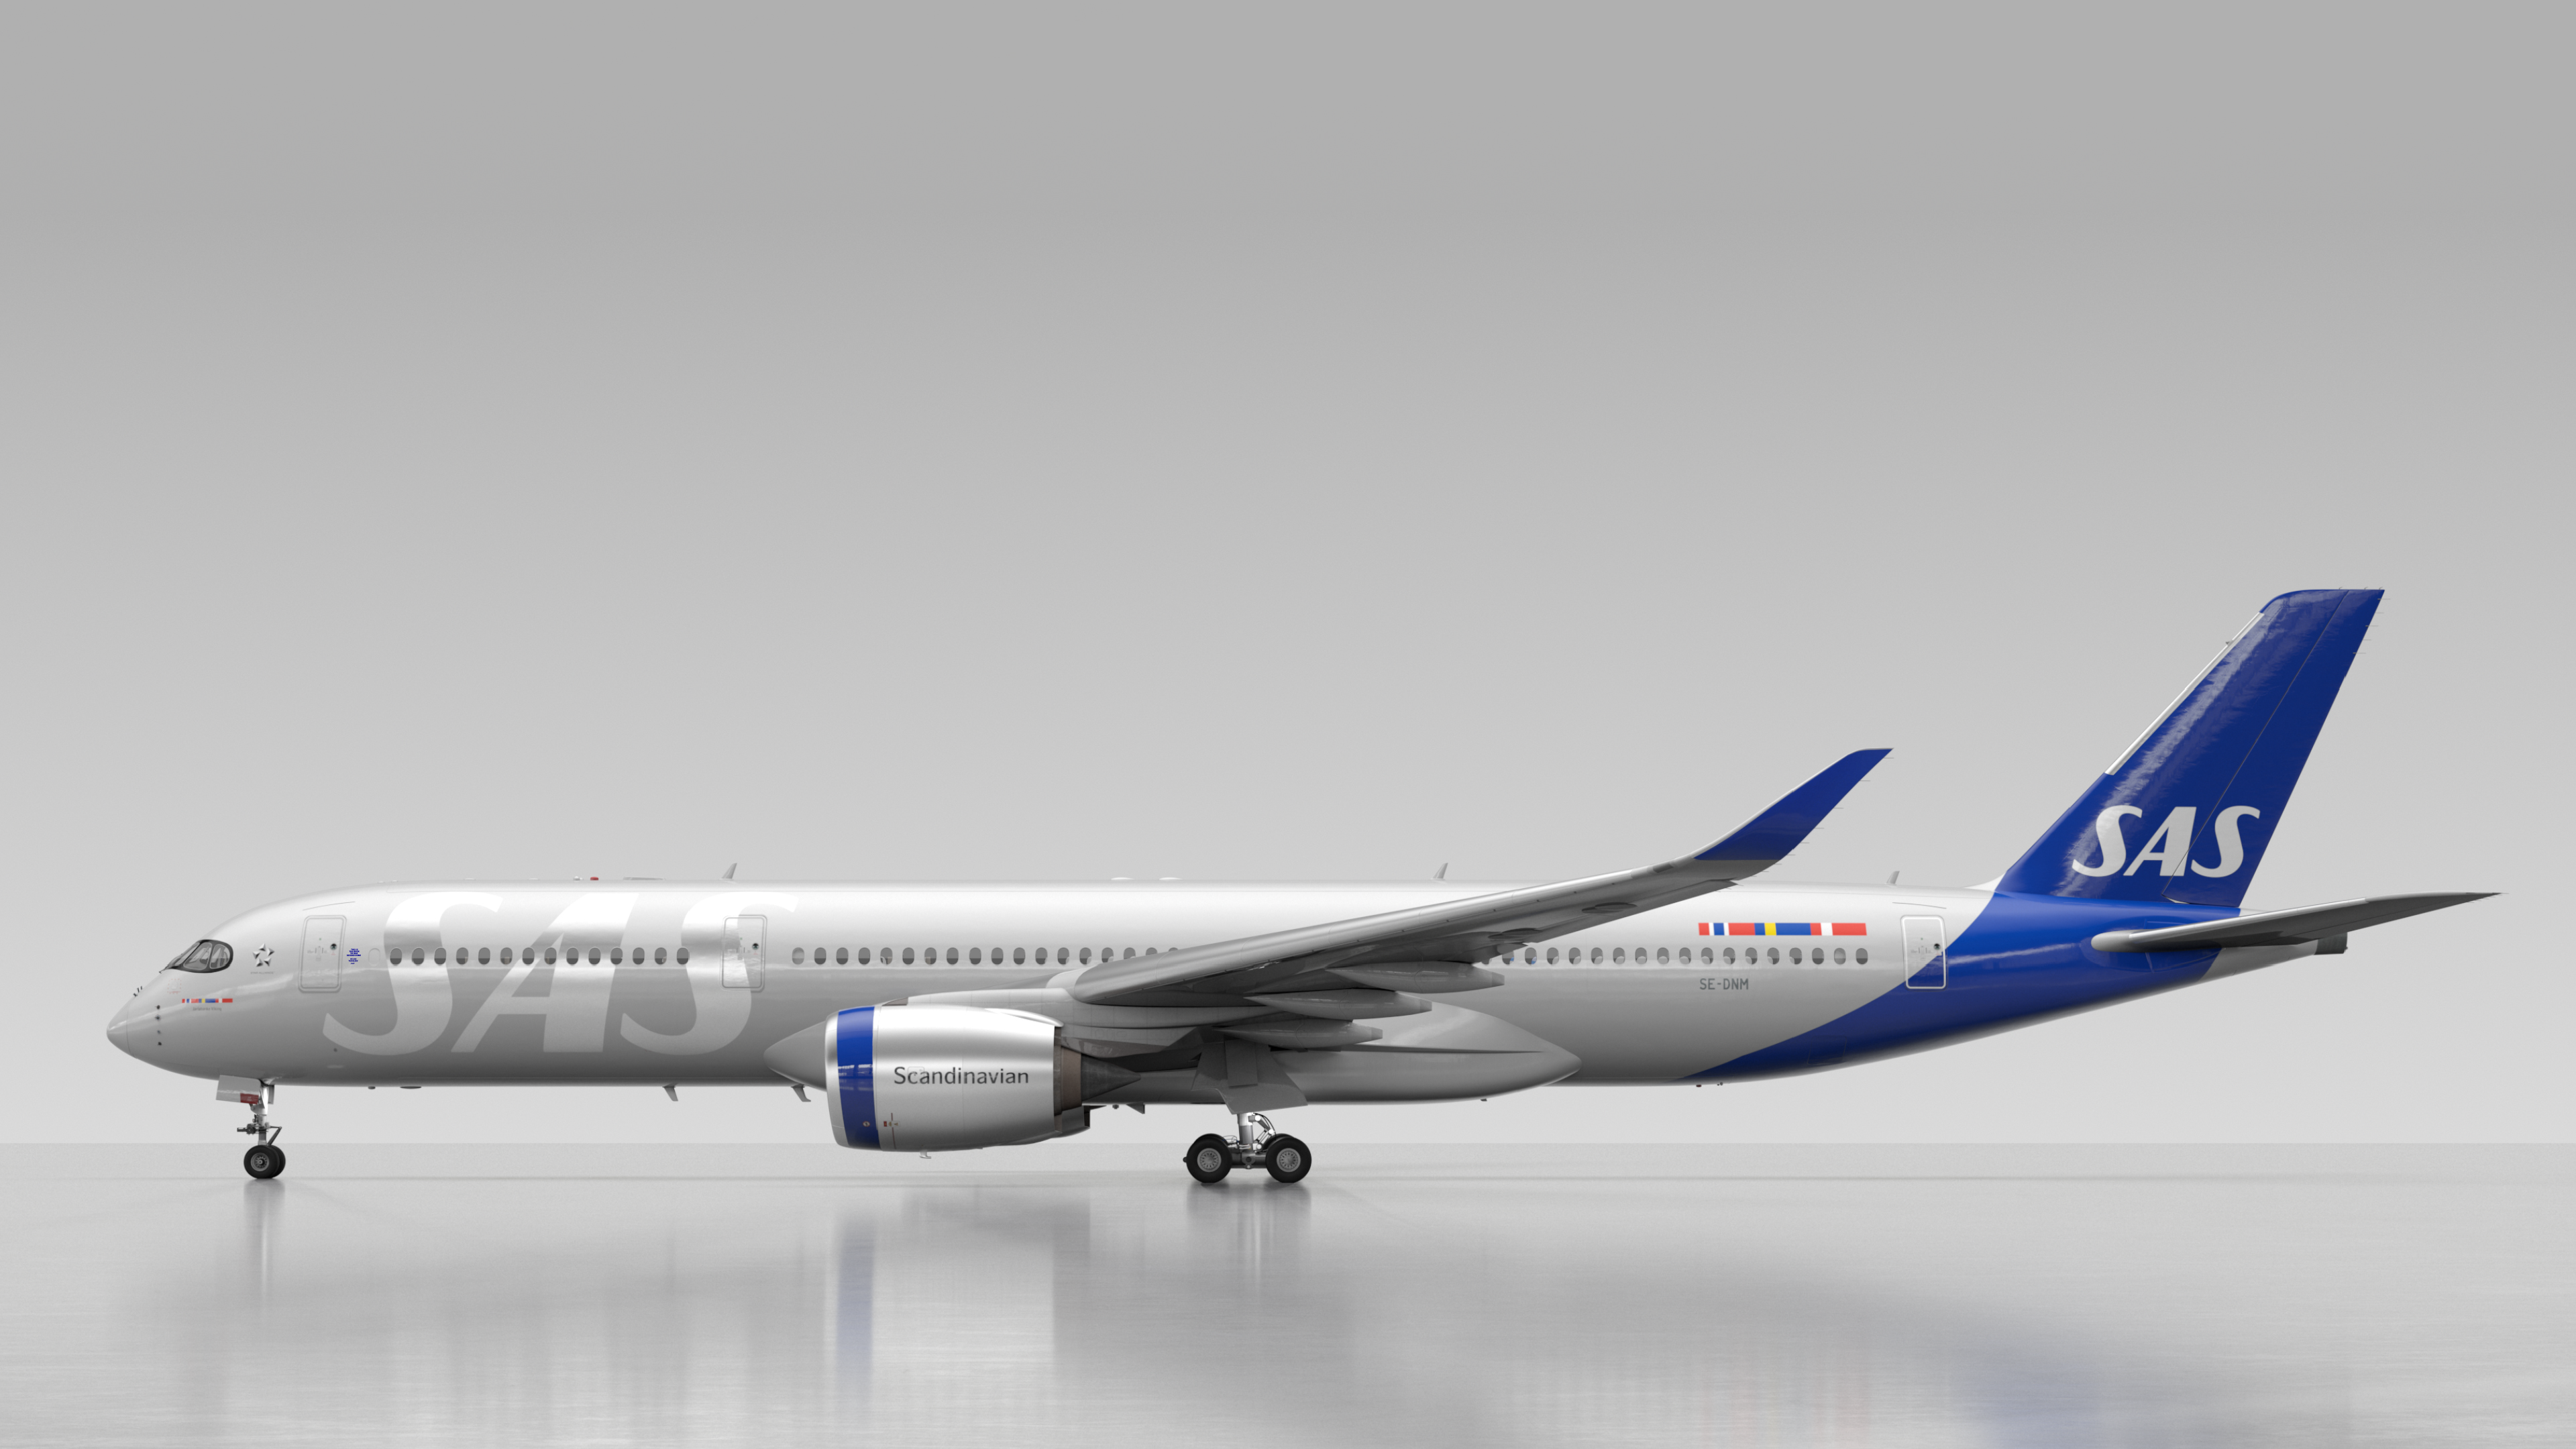 Bold Sas Livery In 2020 Brand Refresh New Aircraft Brand Icon